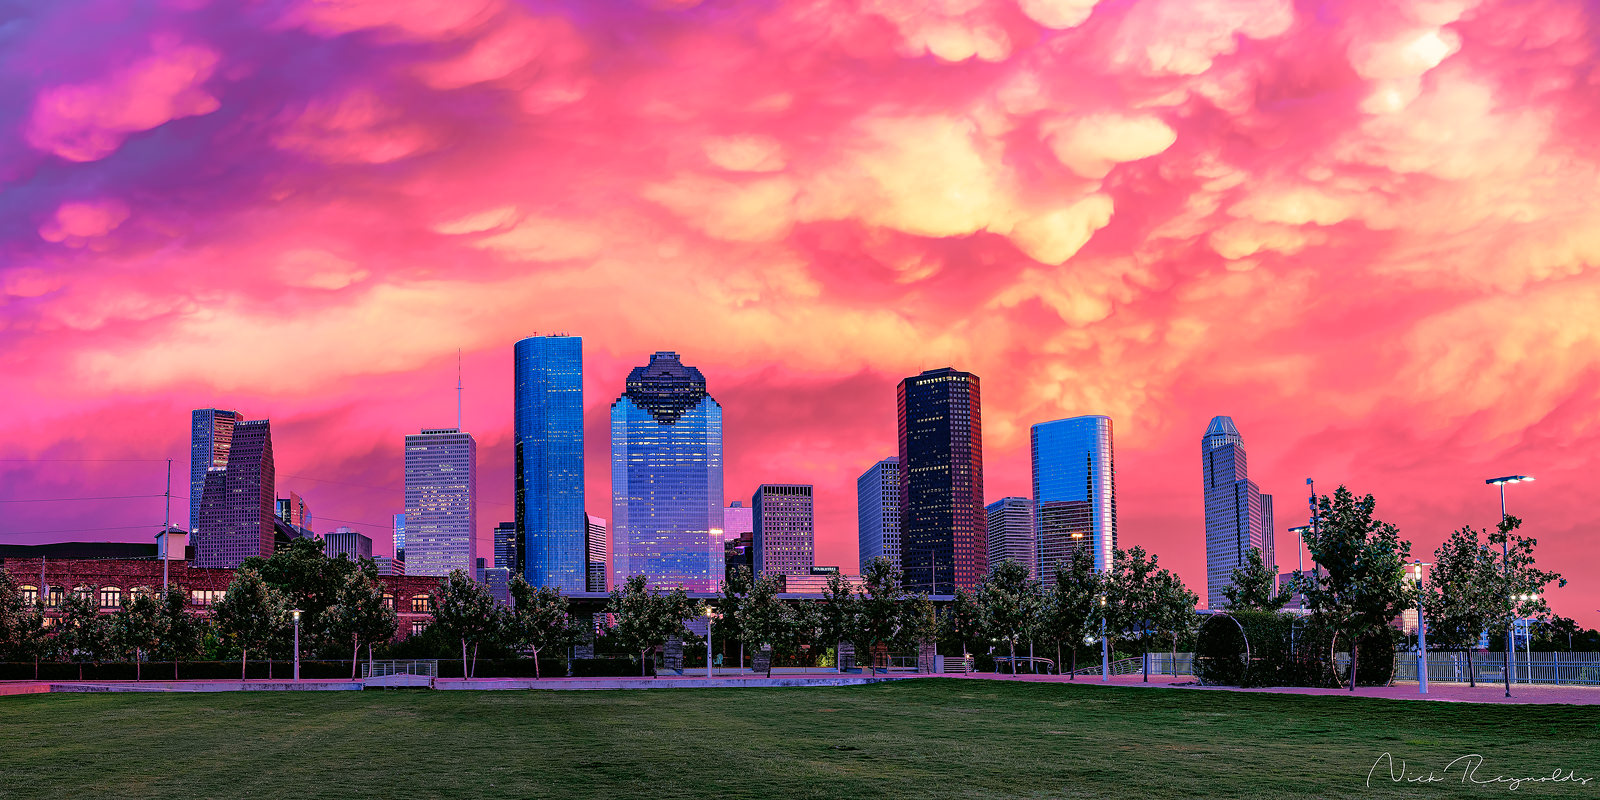 Limited Edition Fine Art - I was actually out shooting something else in the downtown area when the sky lit up like this. We...